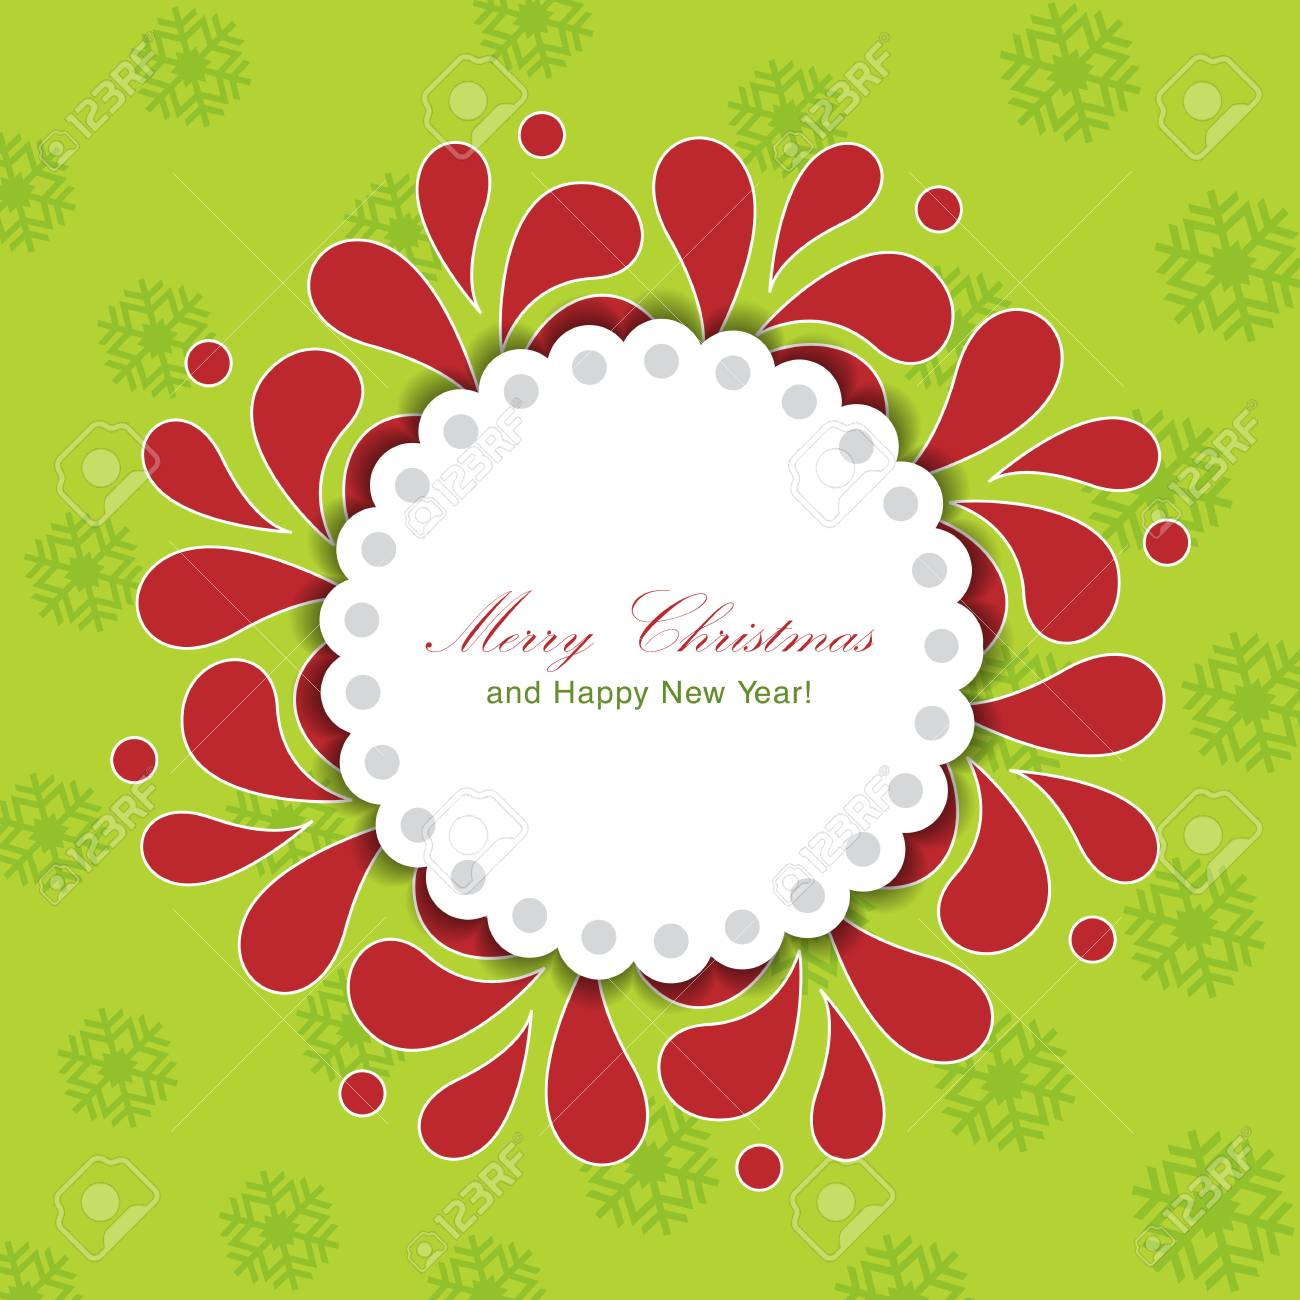 Template frame design for Christmas card. Stock Vector - 24094856